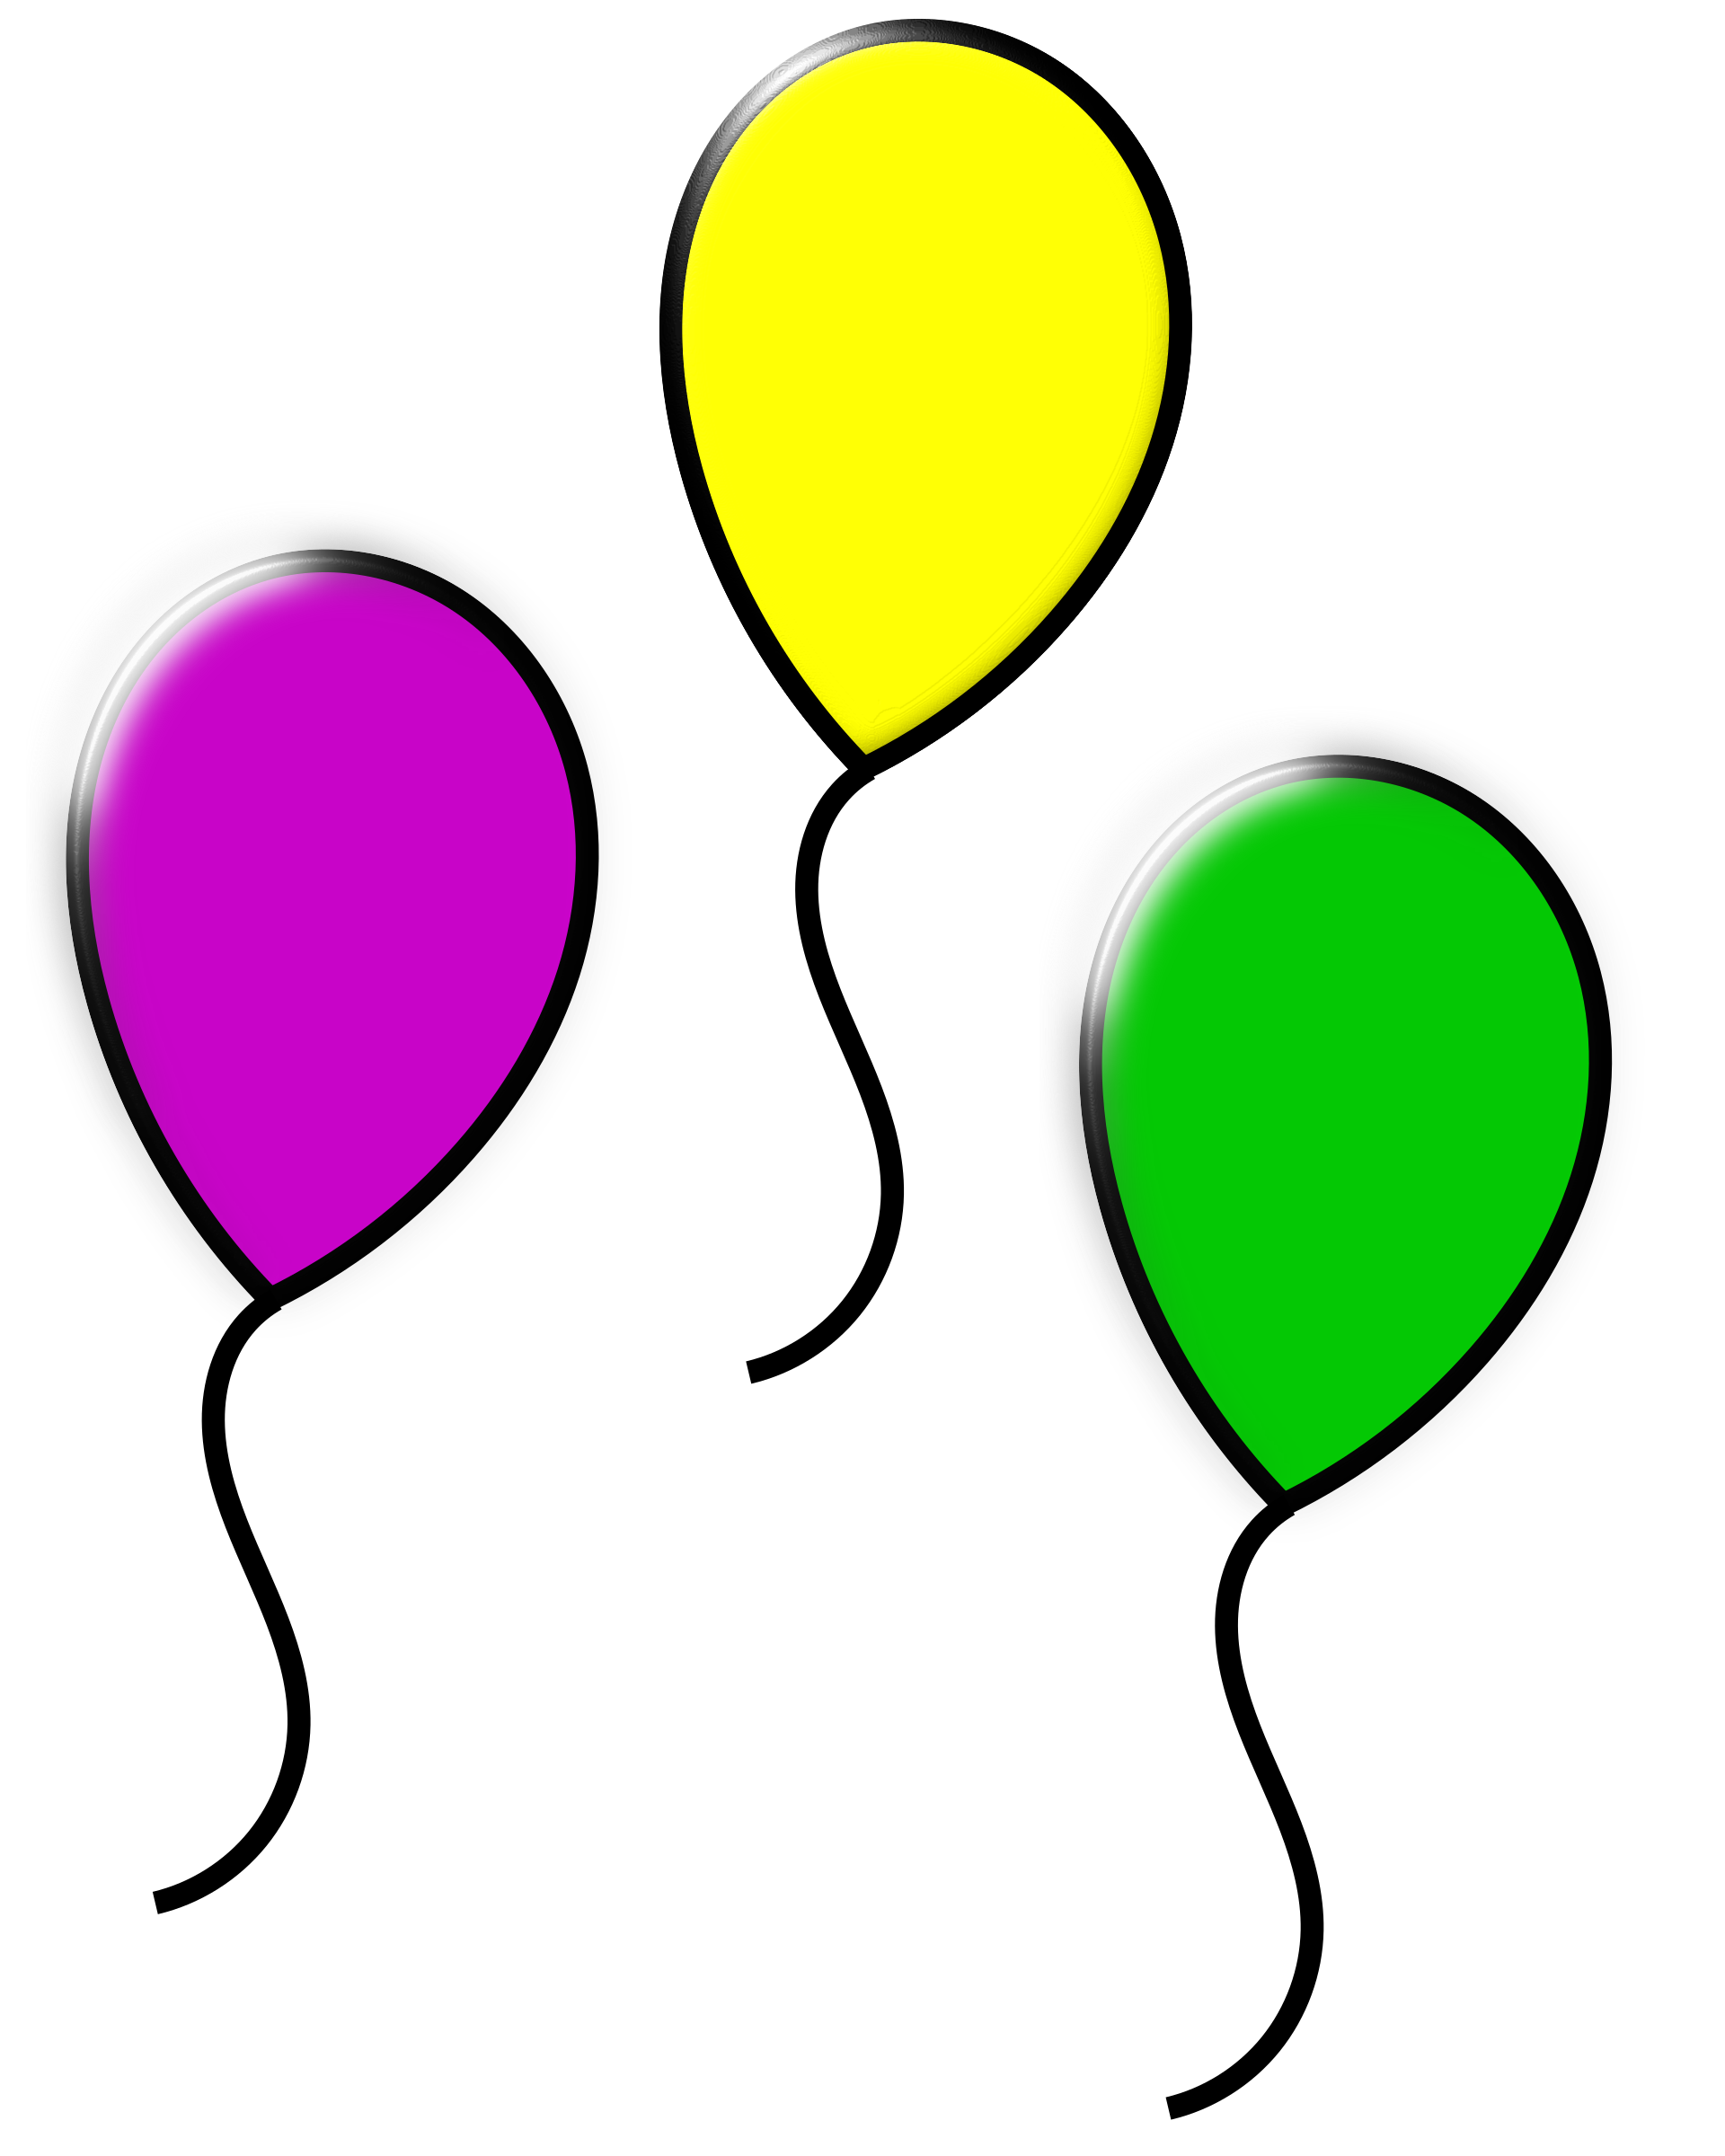 Color clipart balloon Colored balloons Clipart colored balloons